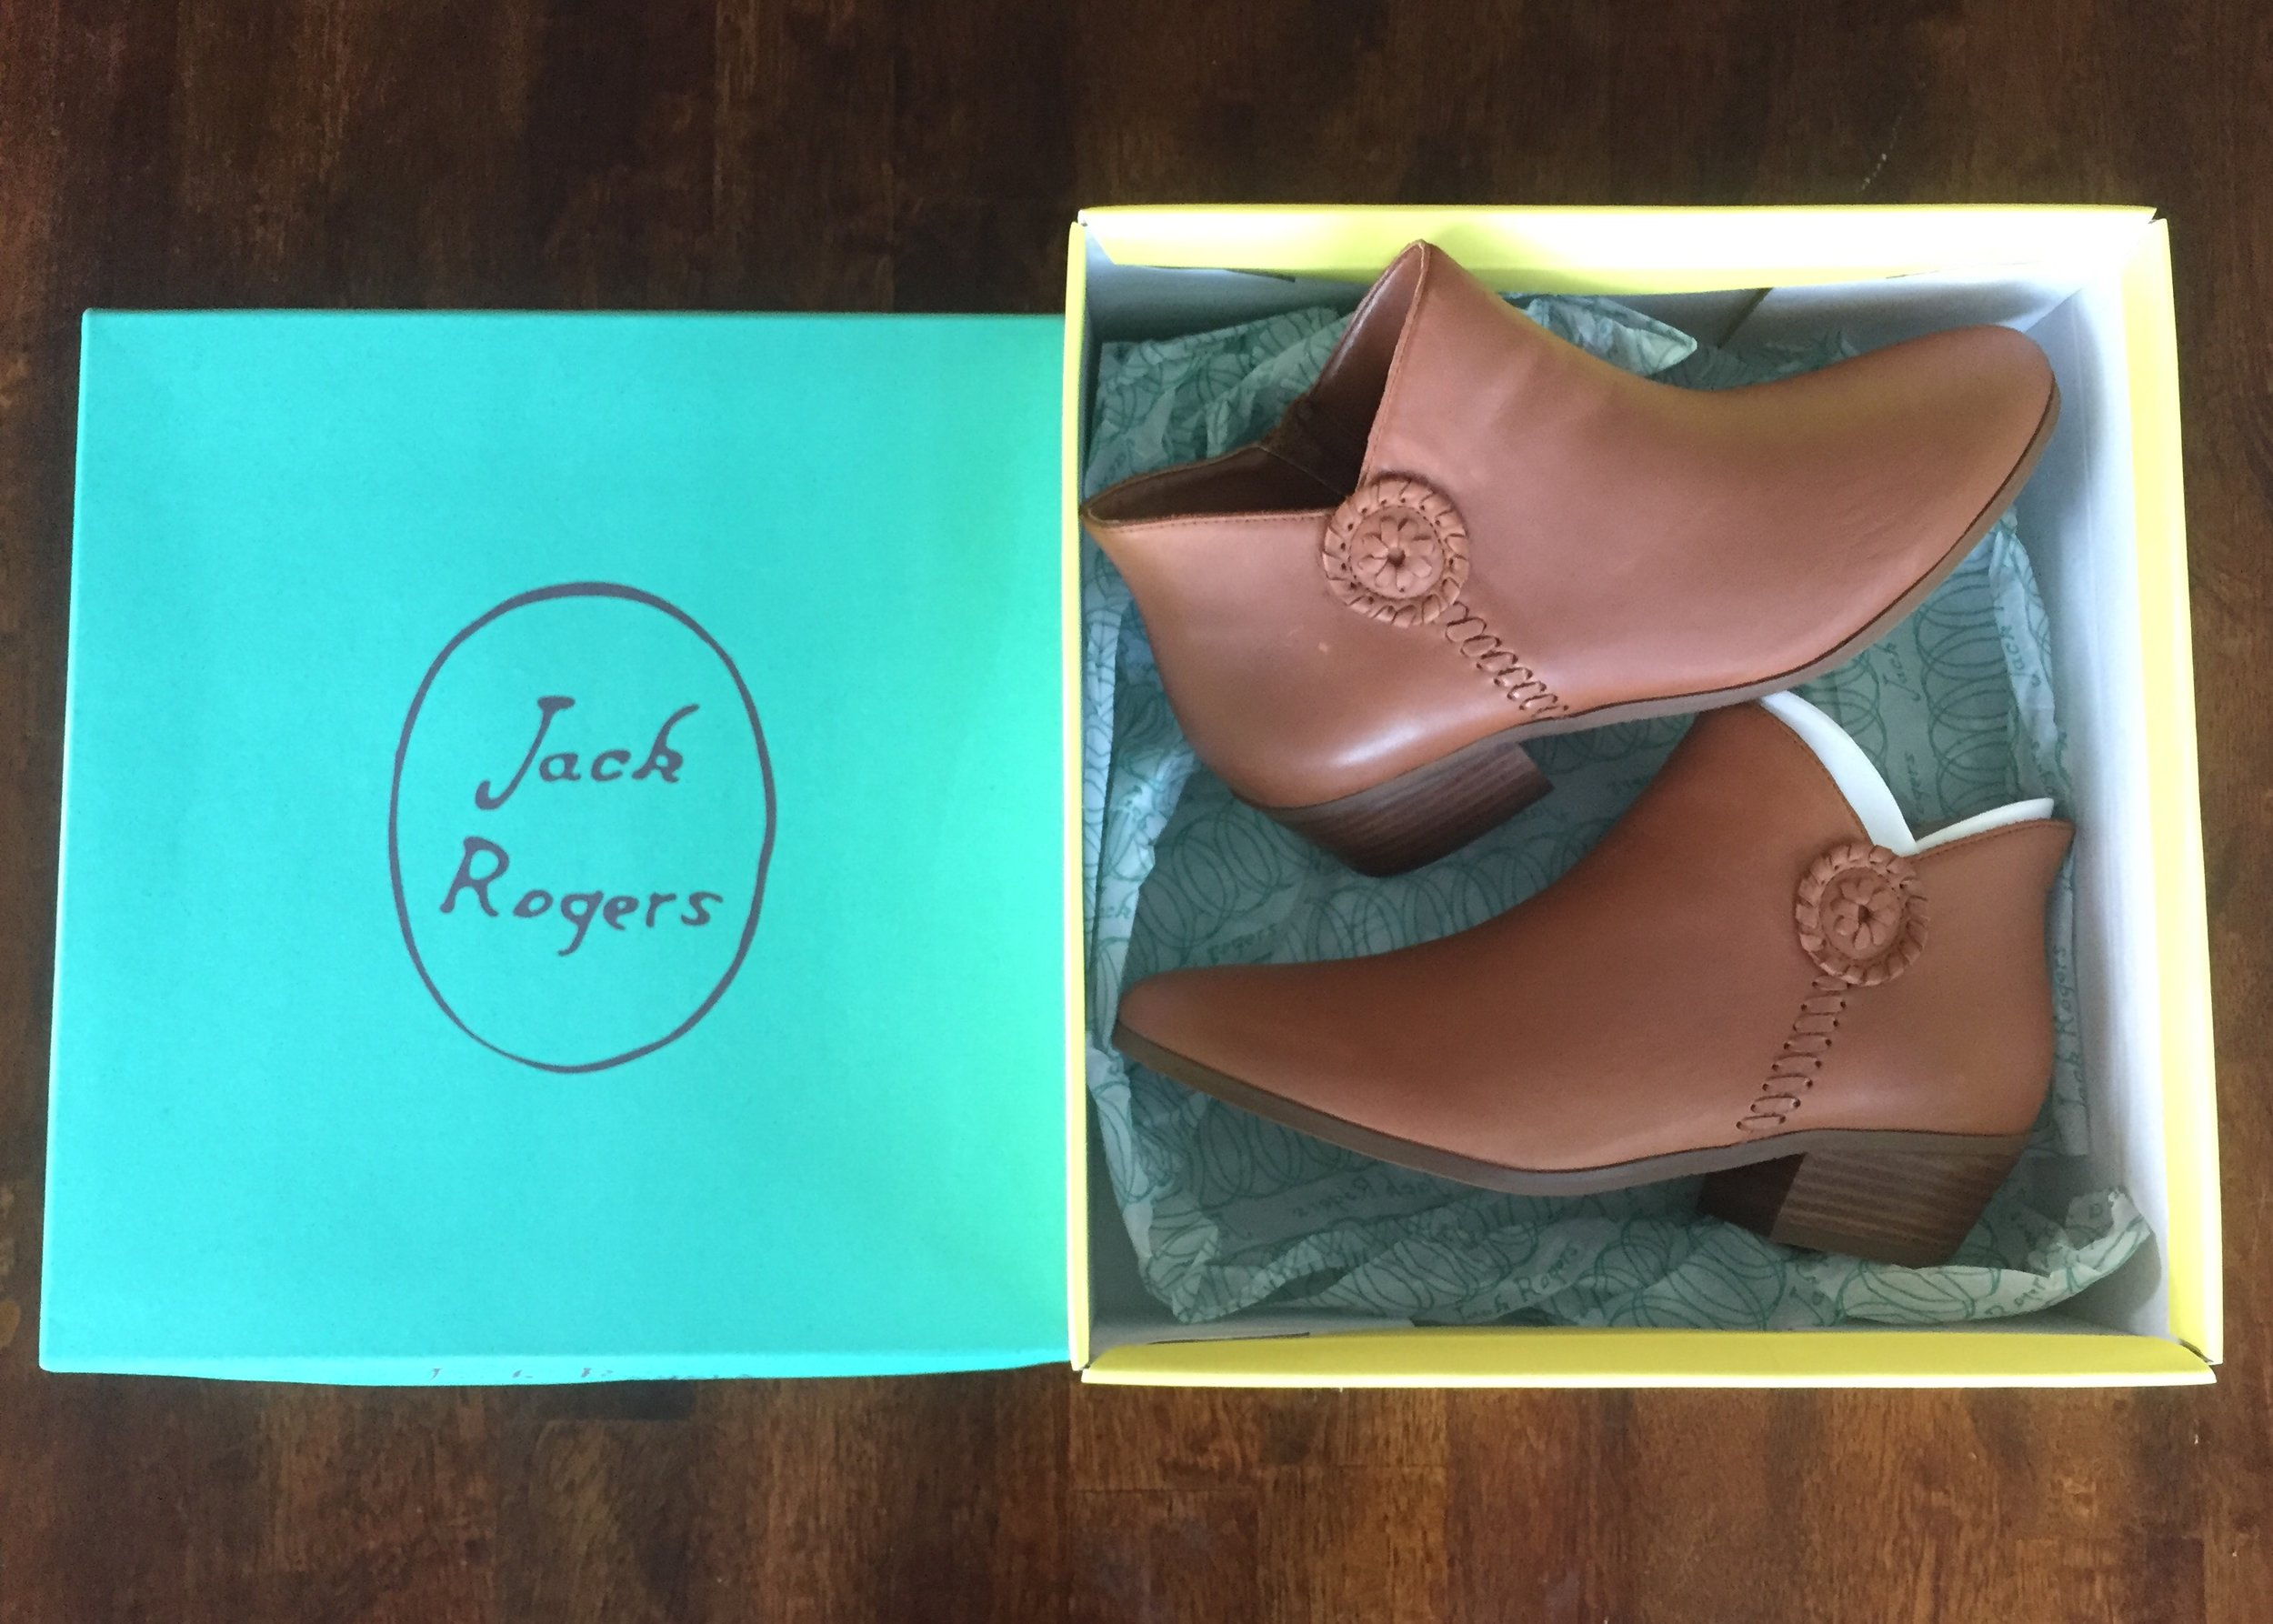 Of course I had to purchase these highly discounted Jack Rogers booties.   Click here   for the suede version on the Jack Rogers website. Or check out your Marshall's to see if they have them for under $60, which is what I paid for these!